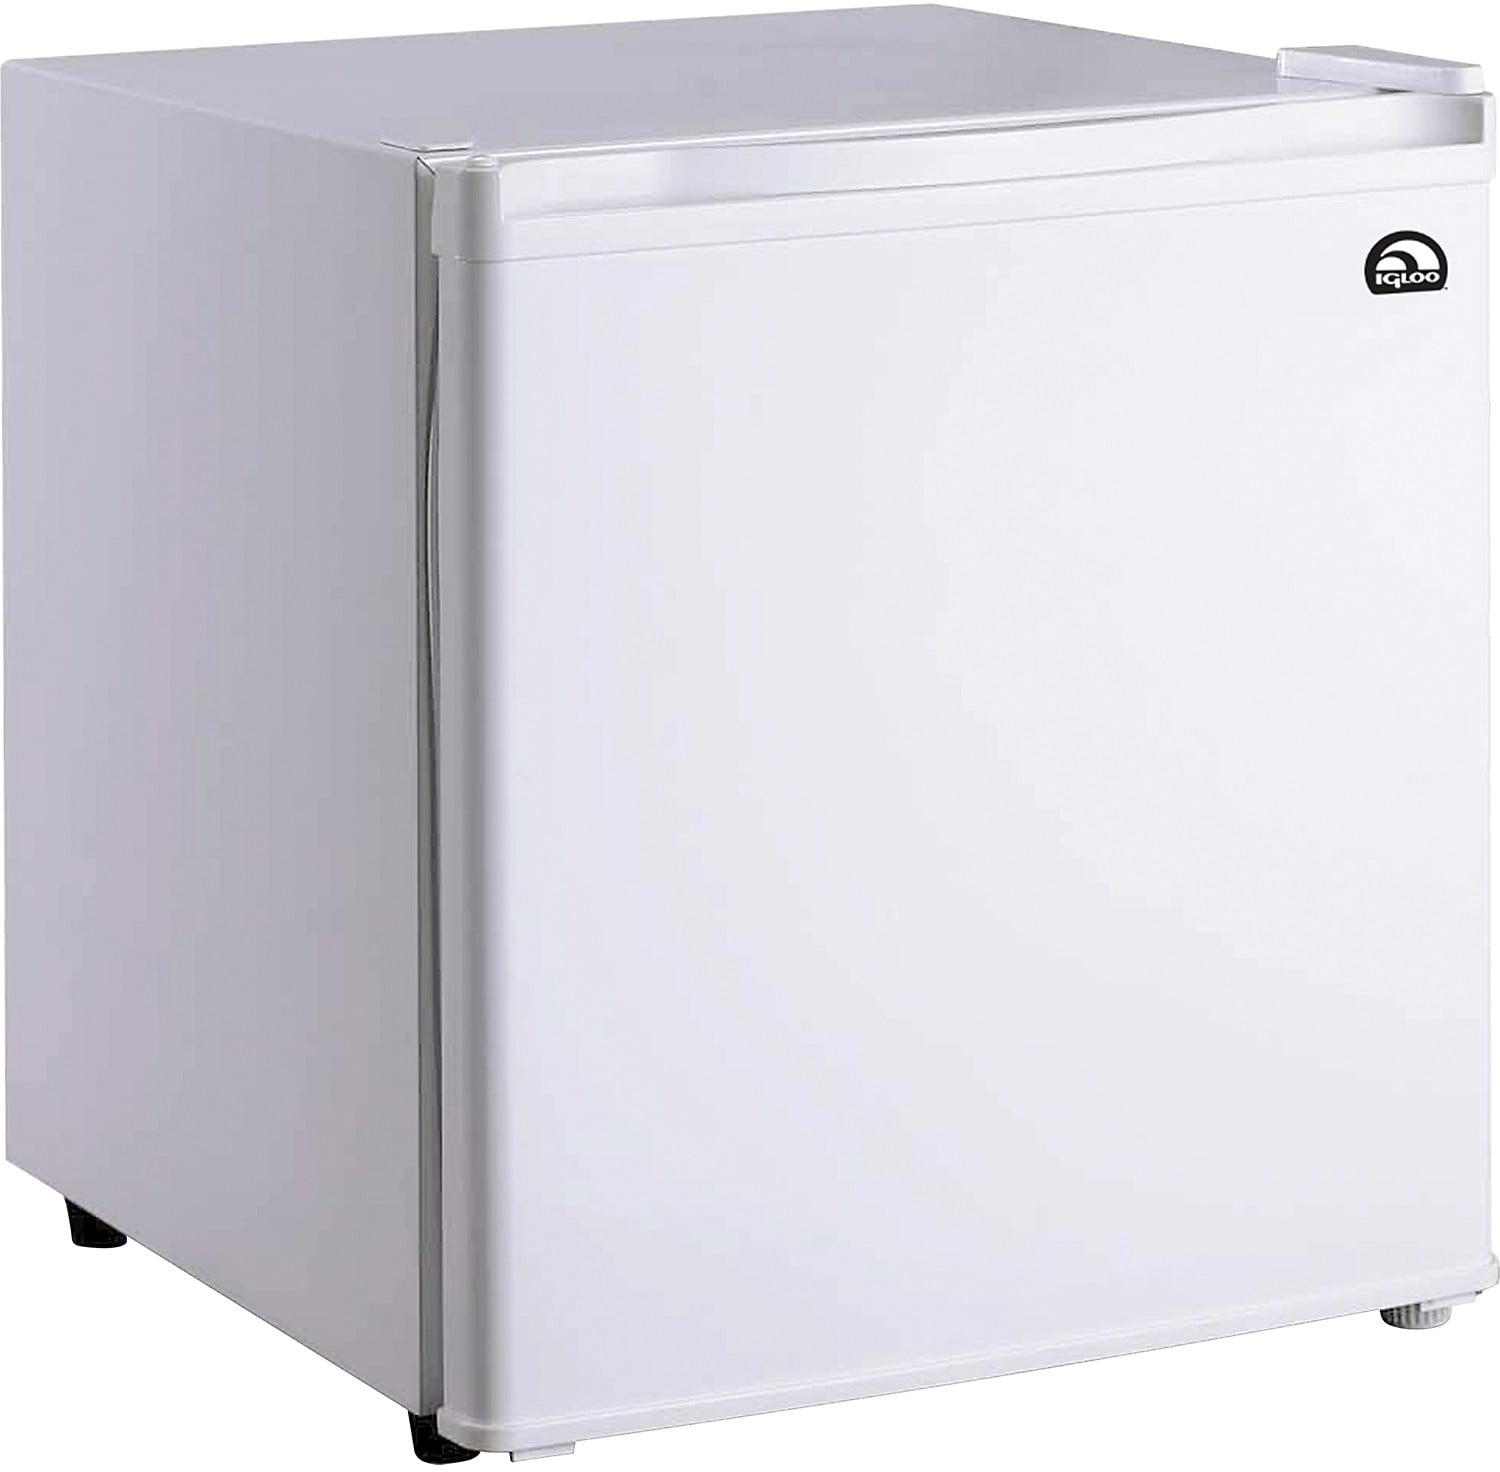 Refrigerators and Freezers - Igloo 1.7 Cu. Ft. Compact Refrigerator - White